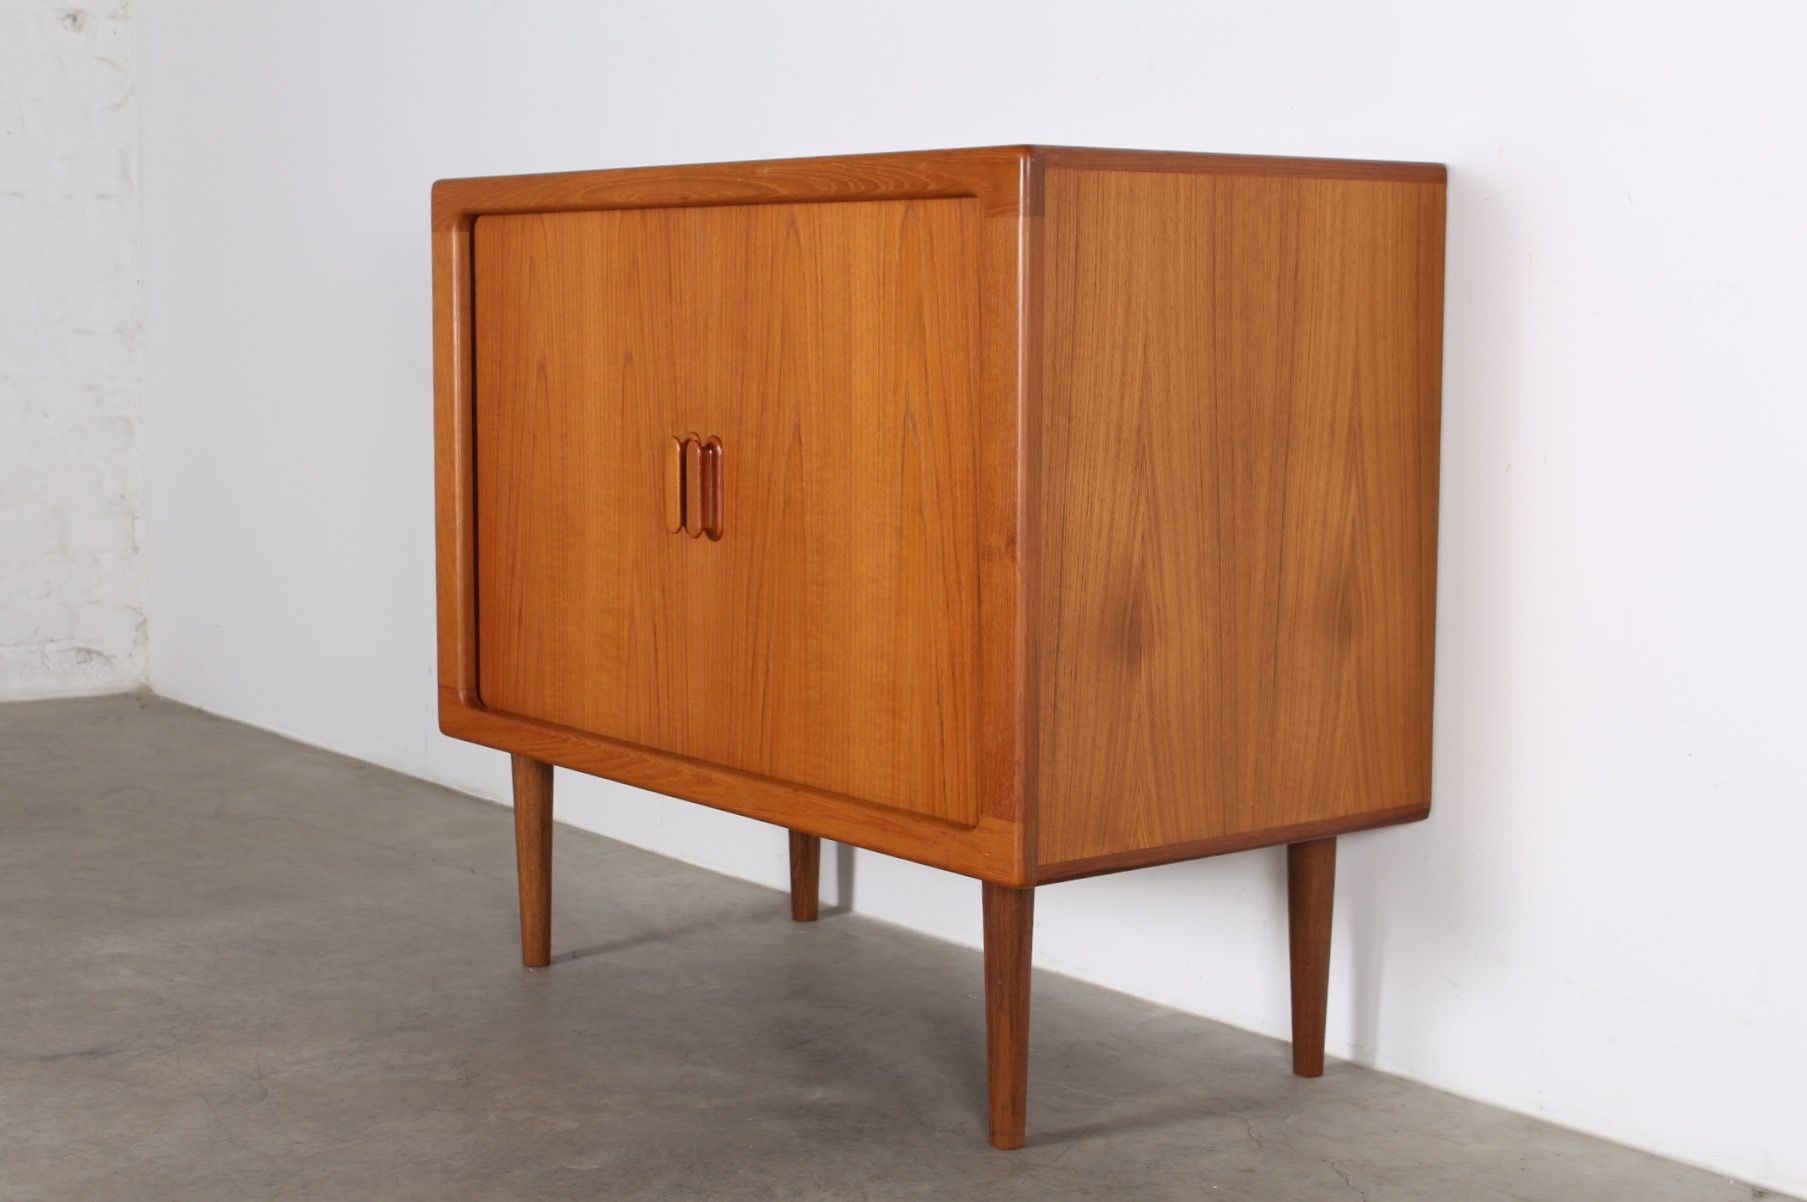 Bahut Scandinave Buffet Commode Bahut Meuble Vintage Scandinave Design à